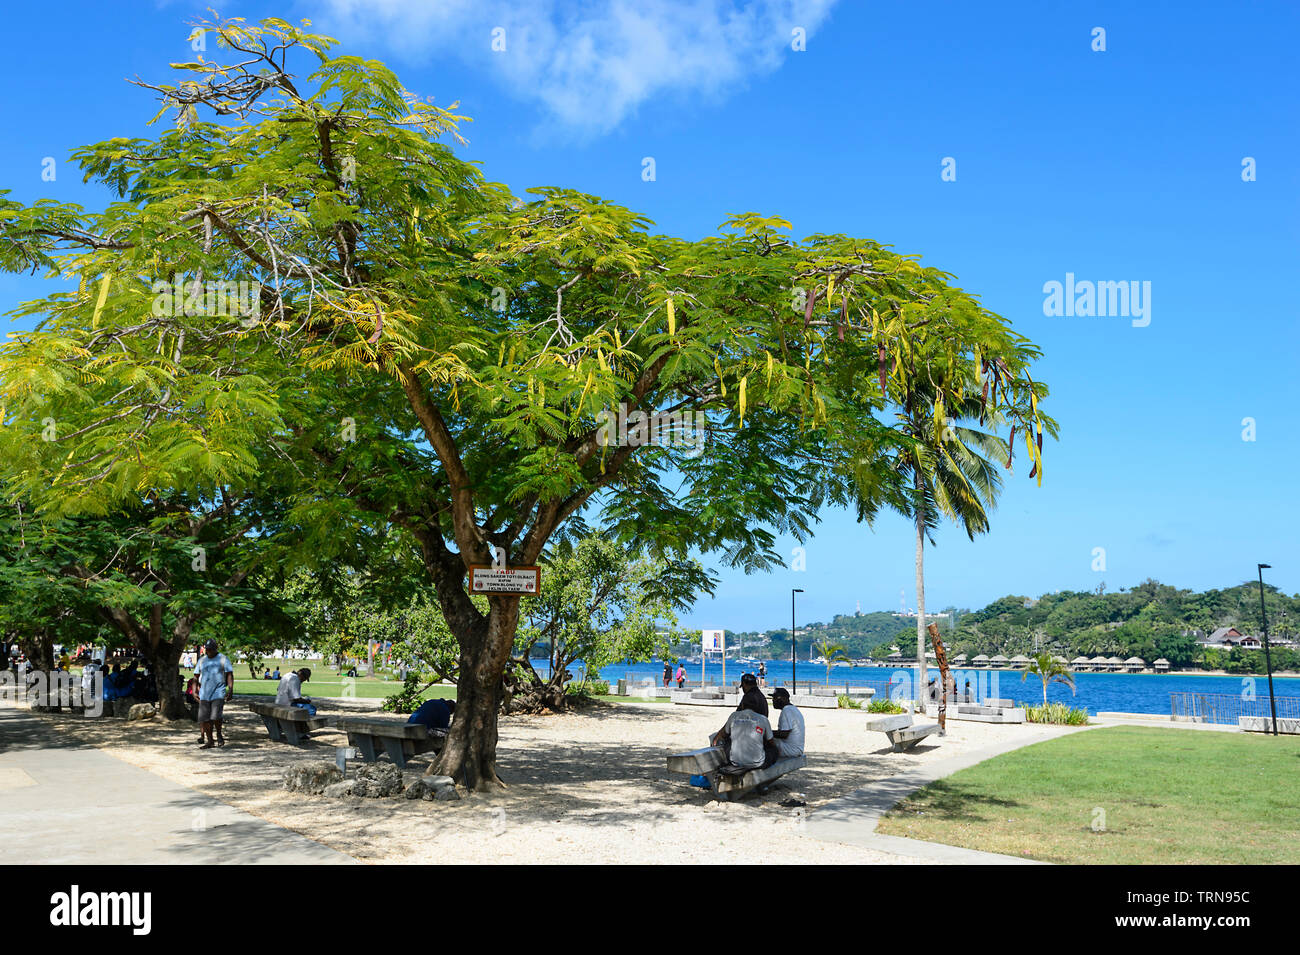 Locals relaxing underneath a Poinciana or Christmans Tree in a park on the foreshore of Port Vila, Vanuatu, Melanesia - Stock Image